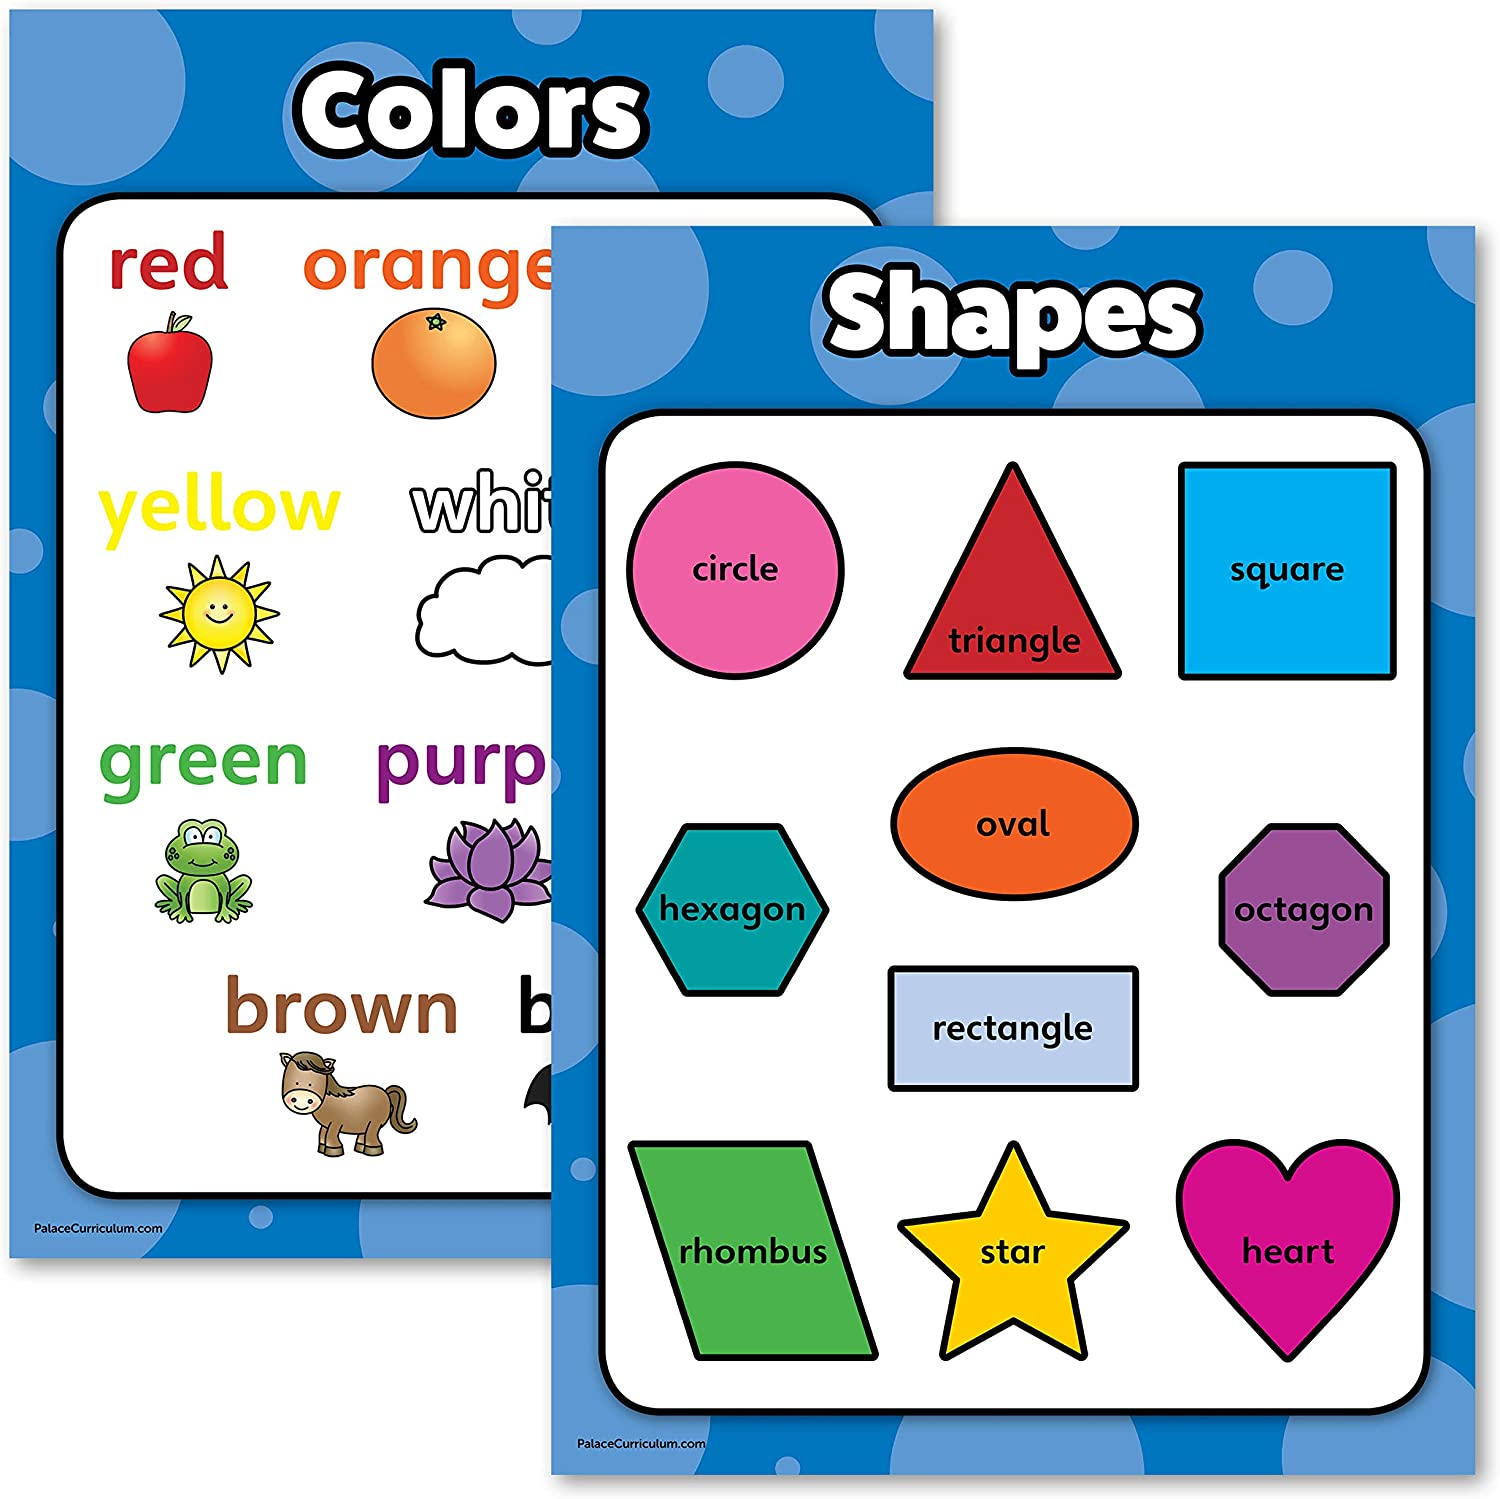 Amazon Com Shapes Colors Poster Chart Set For Kids Laminated Double Sided 18x24 Office Products